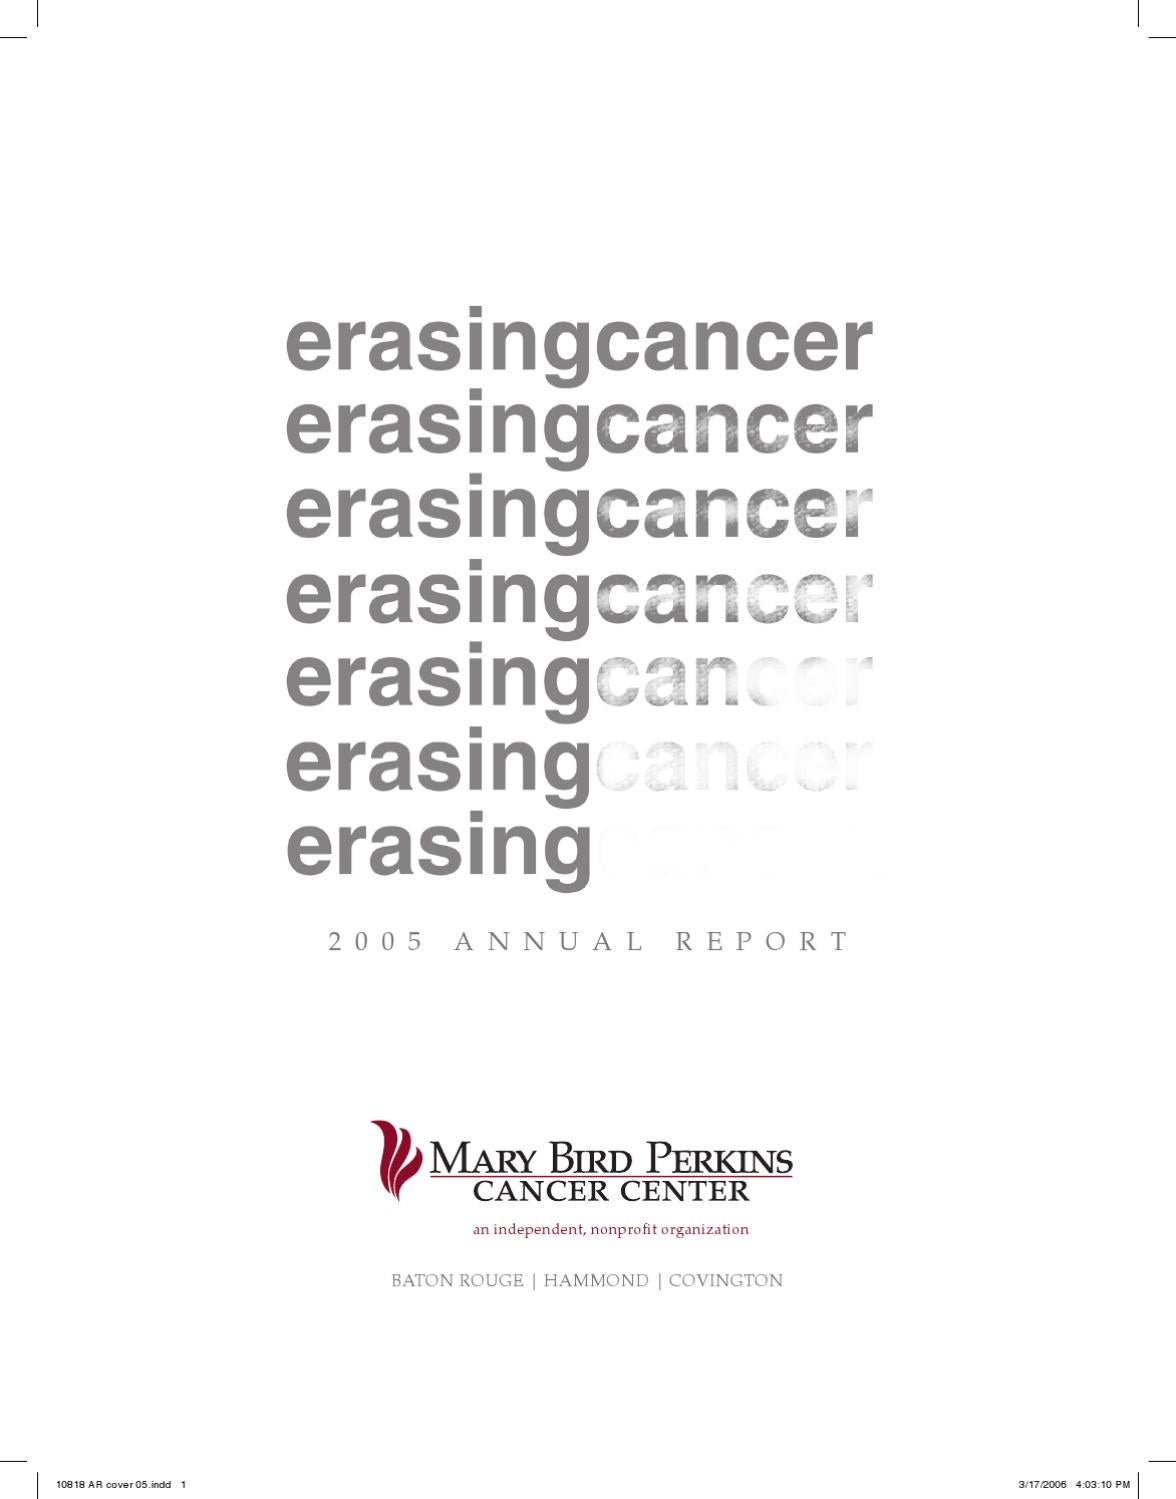 2005 Annual Report by Mary Bird Perkins Cancer Center - issuu